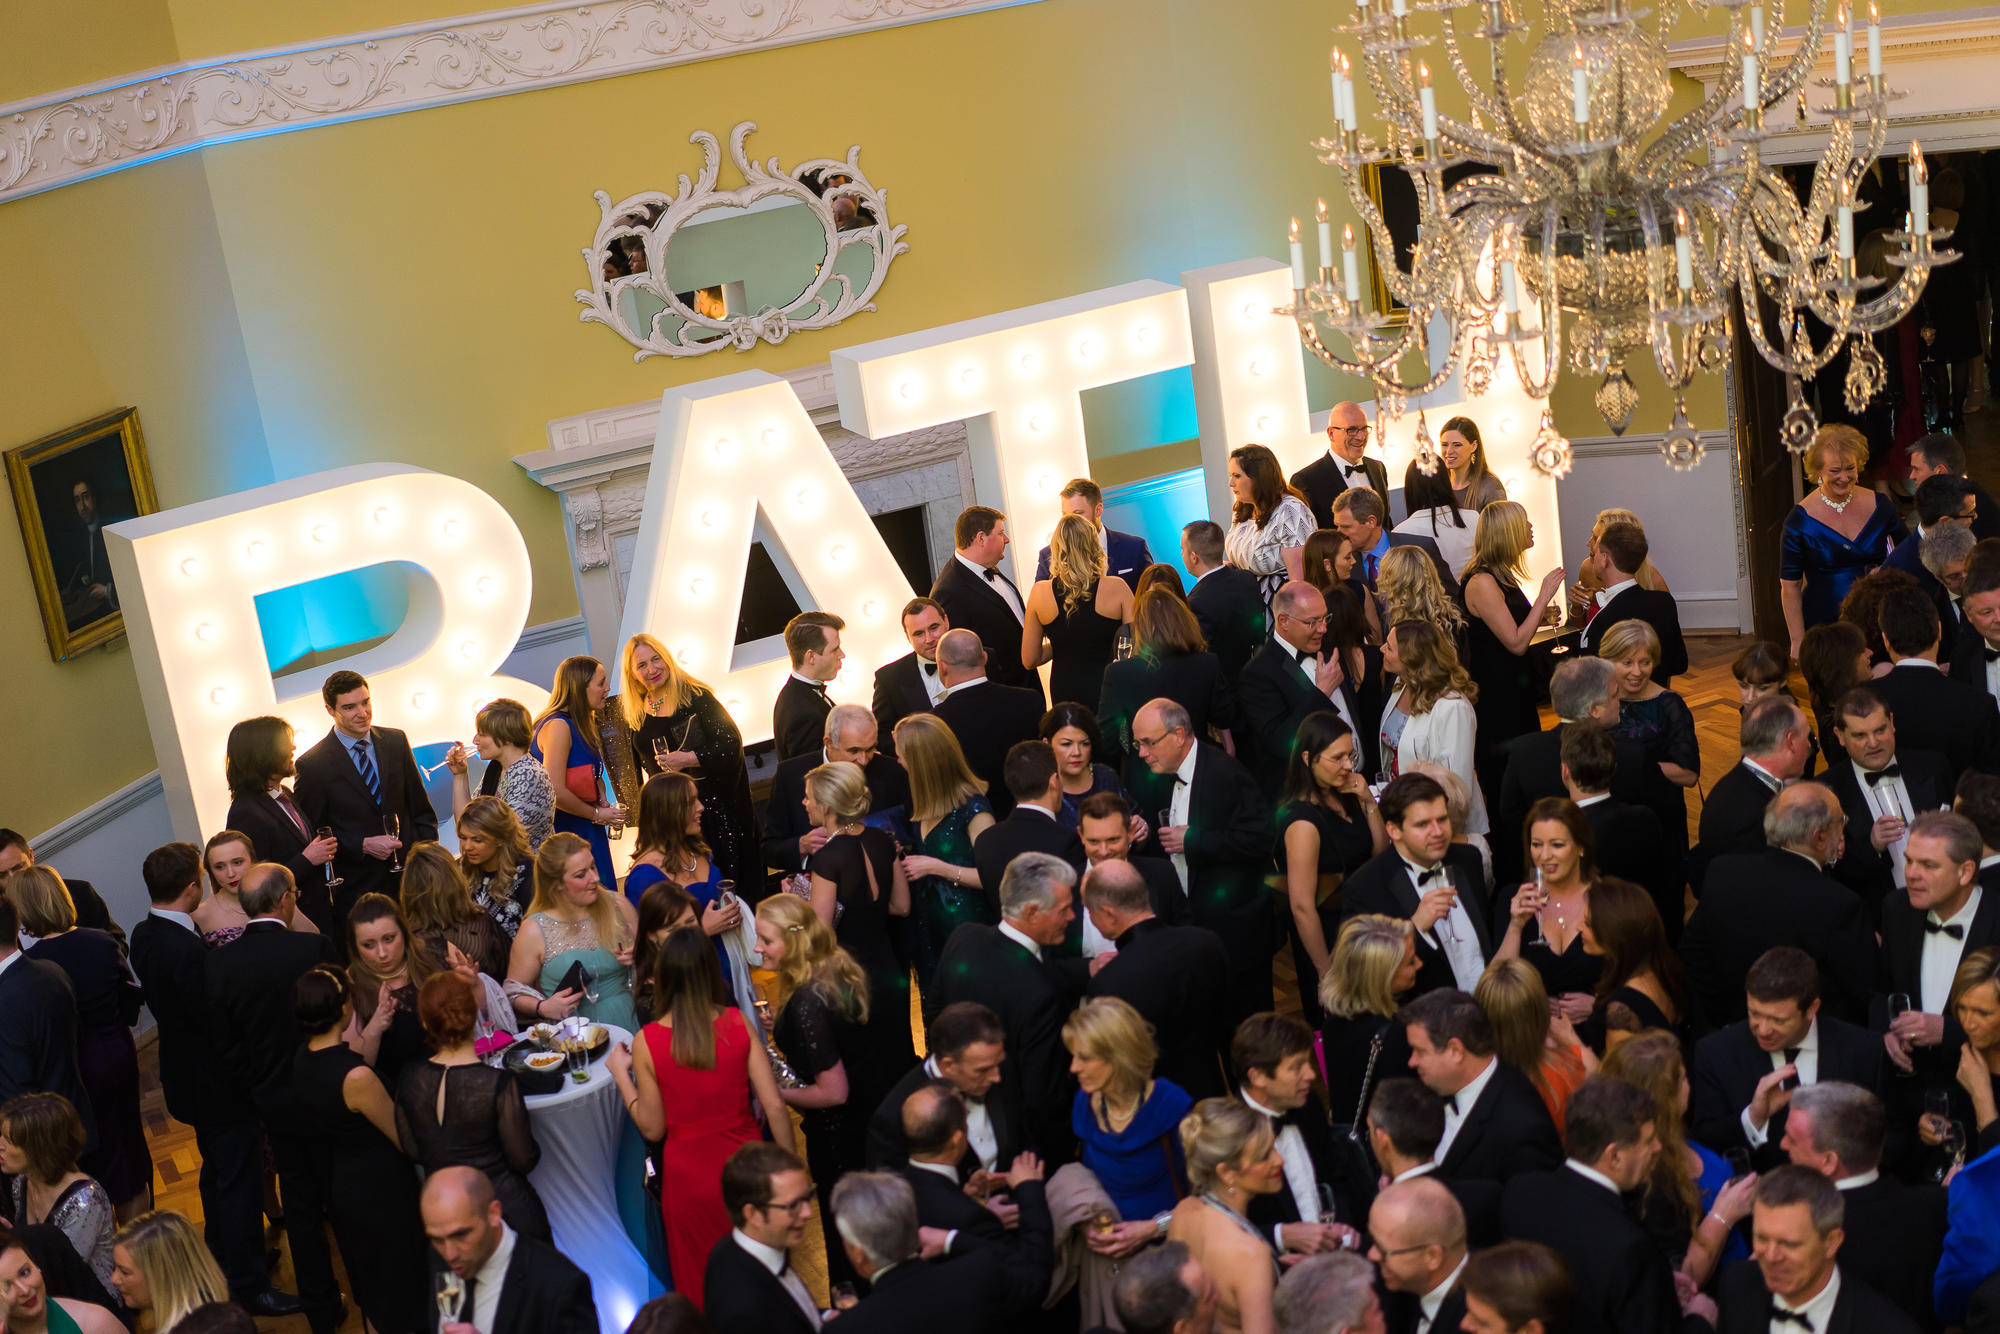 Bath Life Awards 2016, Octagon Assembly Rooms. Image: Paolo Ferla